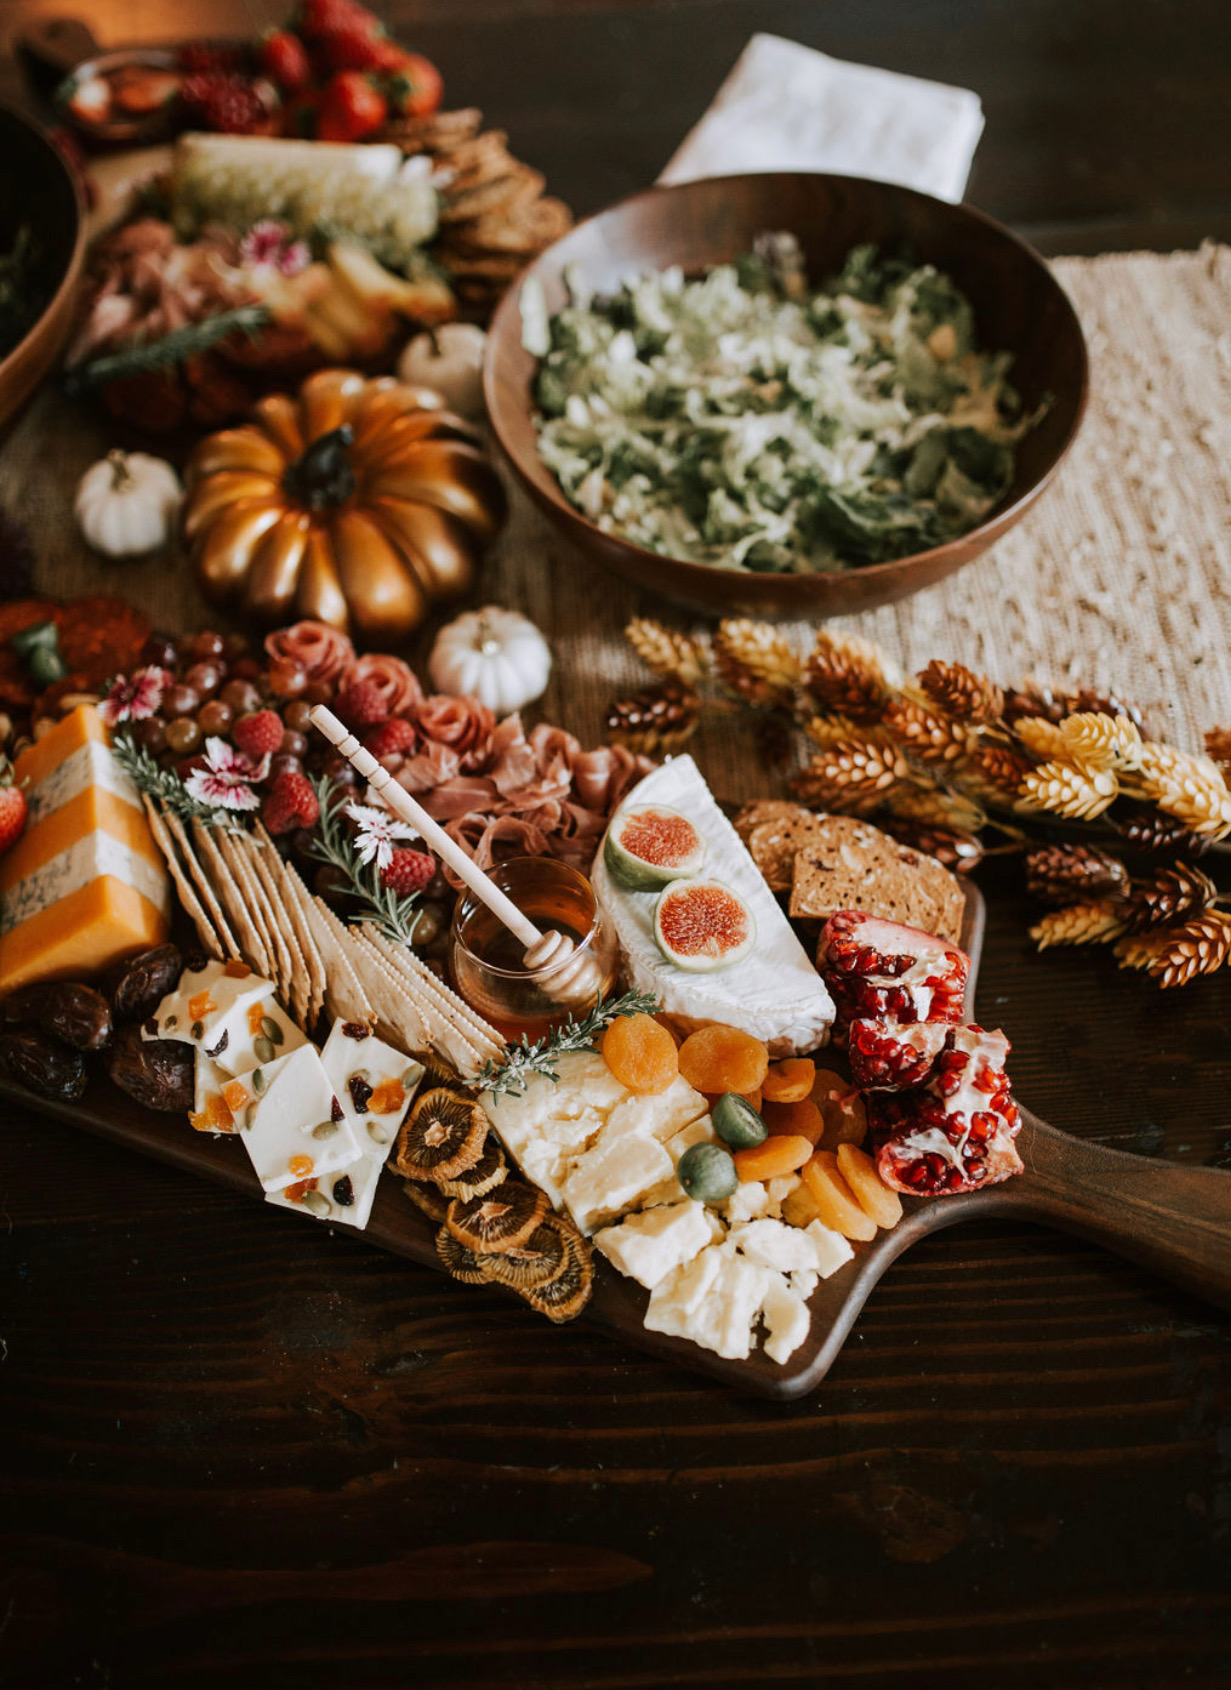 Ruthie Ridley Blog How To Make A Killer Fall Charcuterie Board